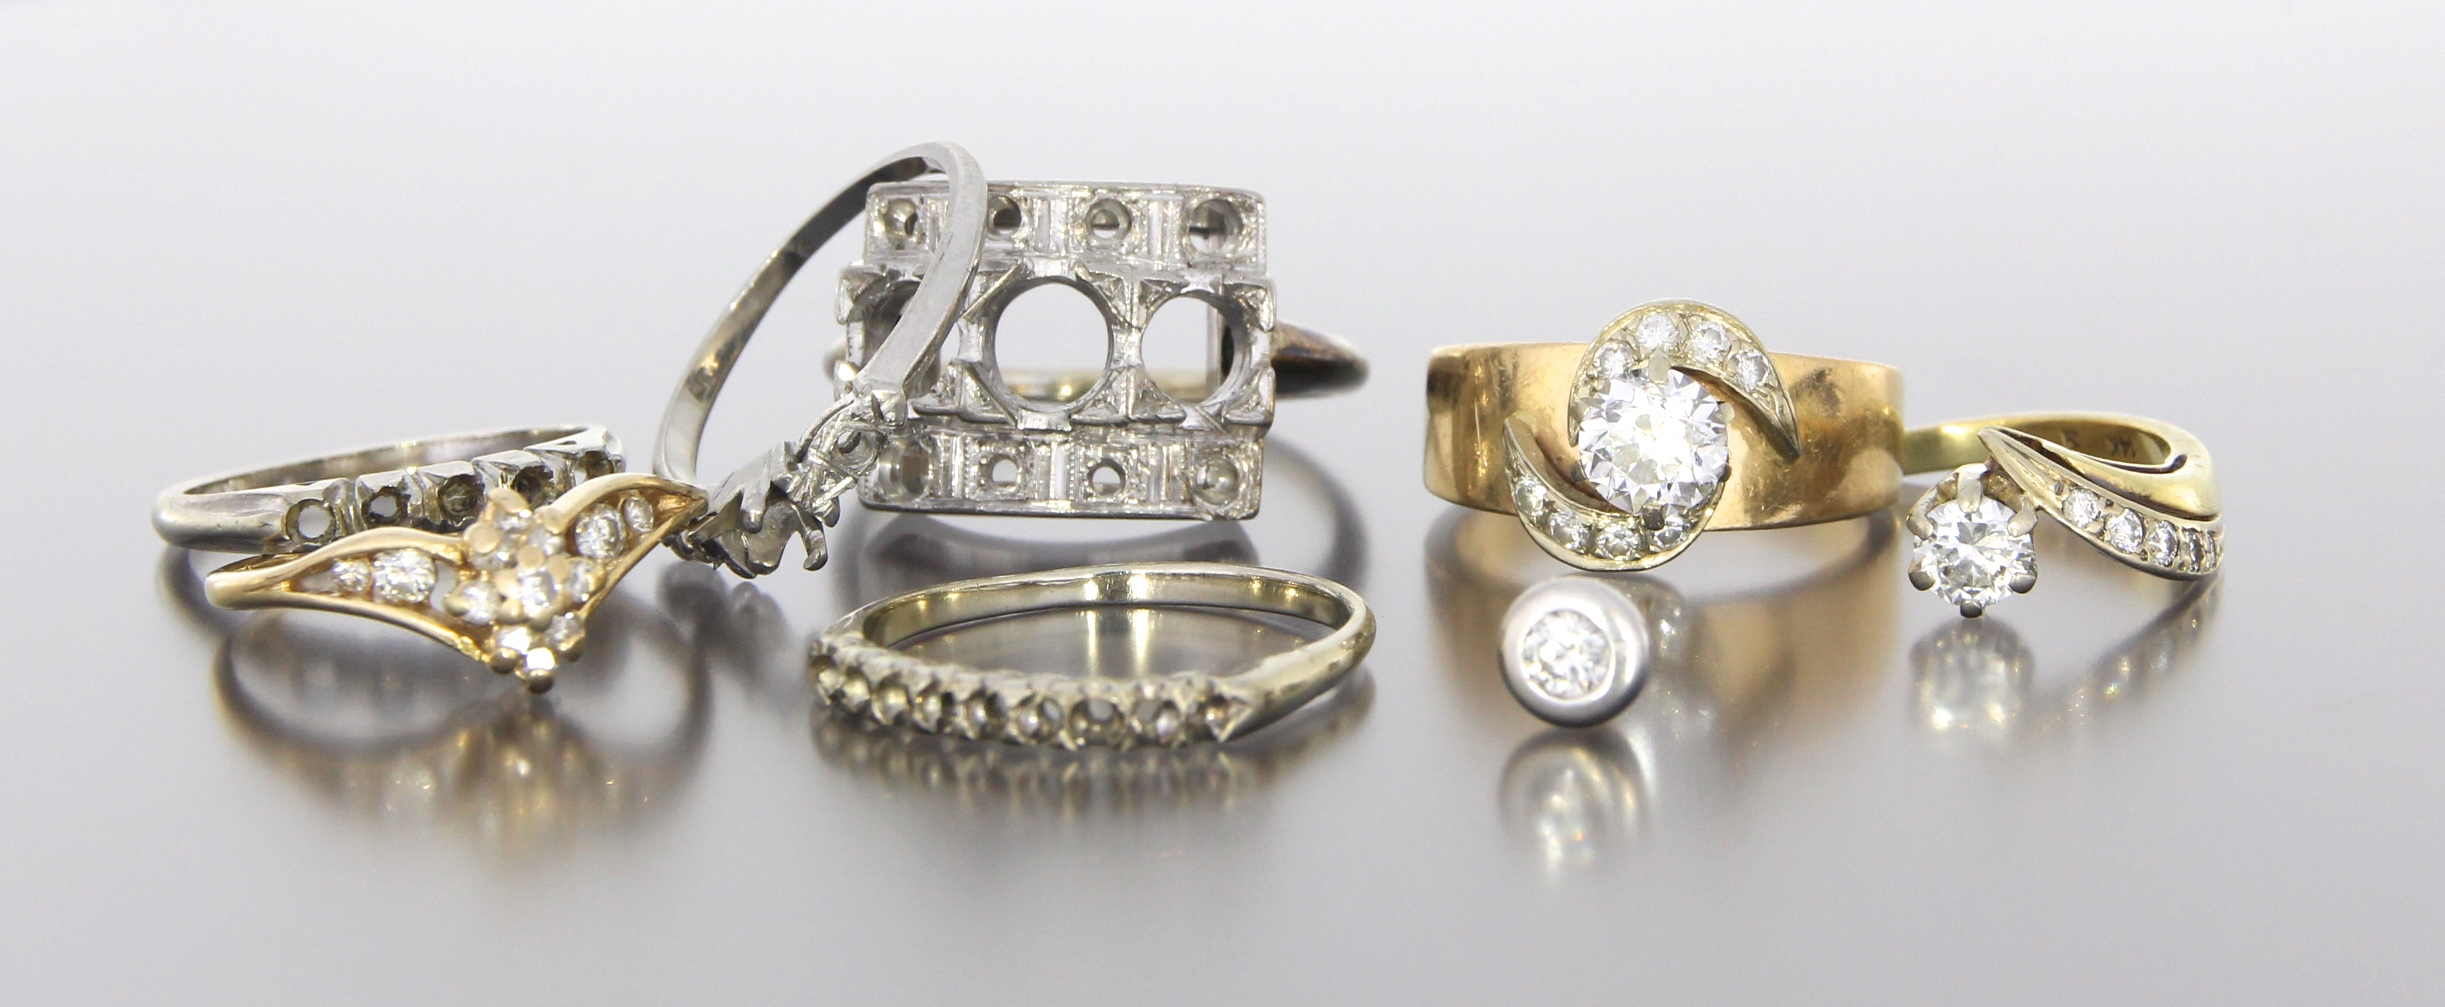 A collection on sentimental pieces, old rings that were out of style, and left over gold with a wish to create something new and beautiful from her pieces....